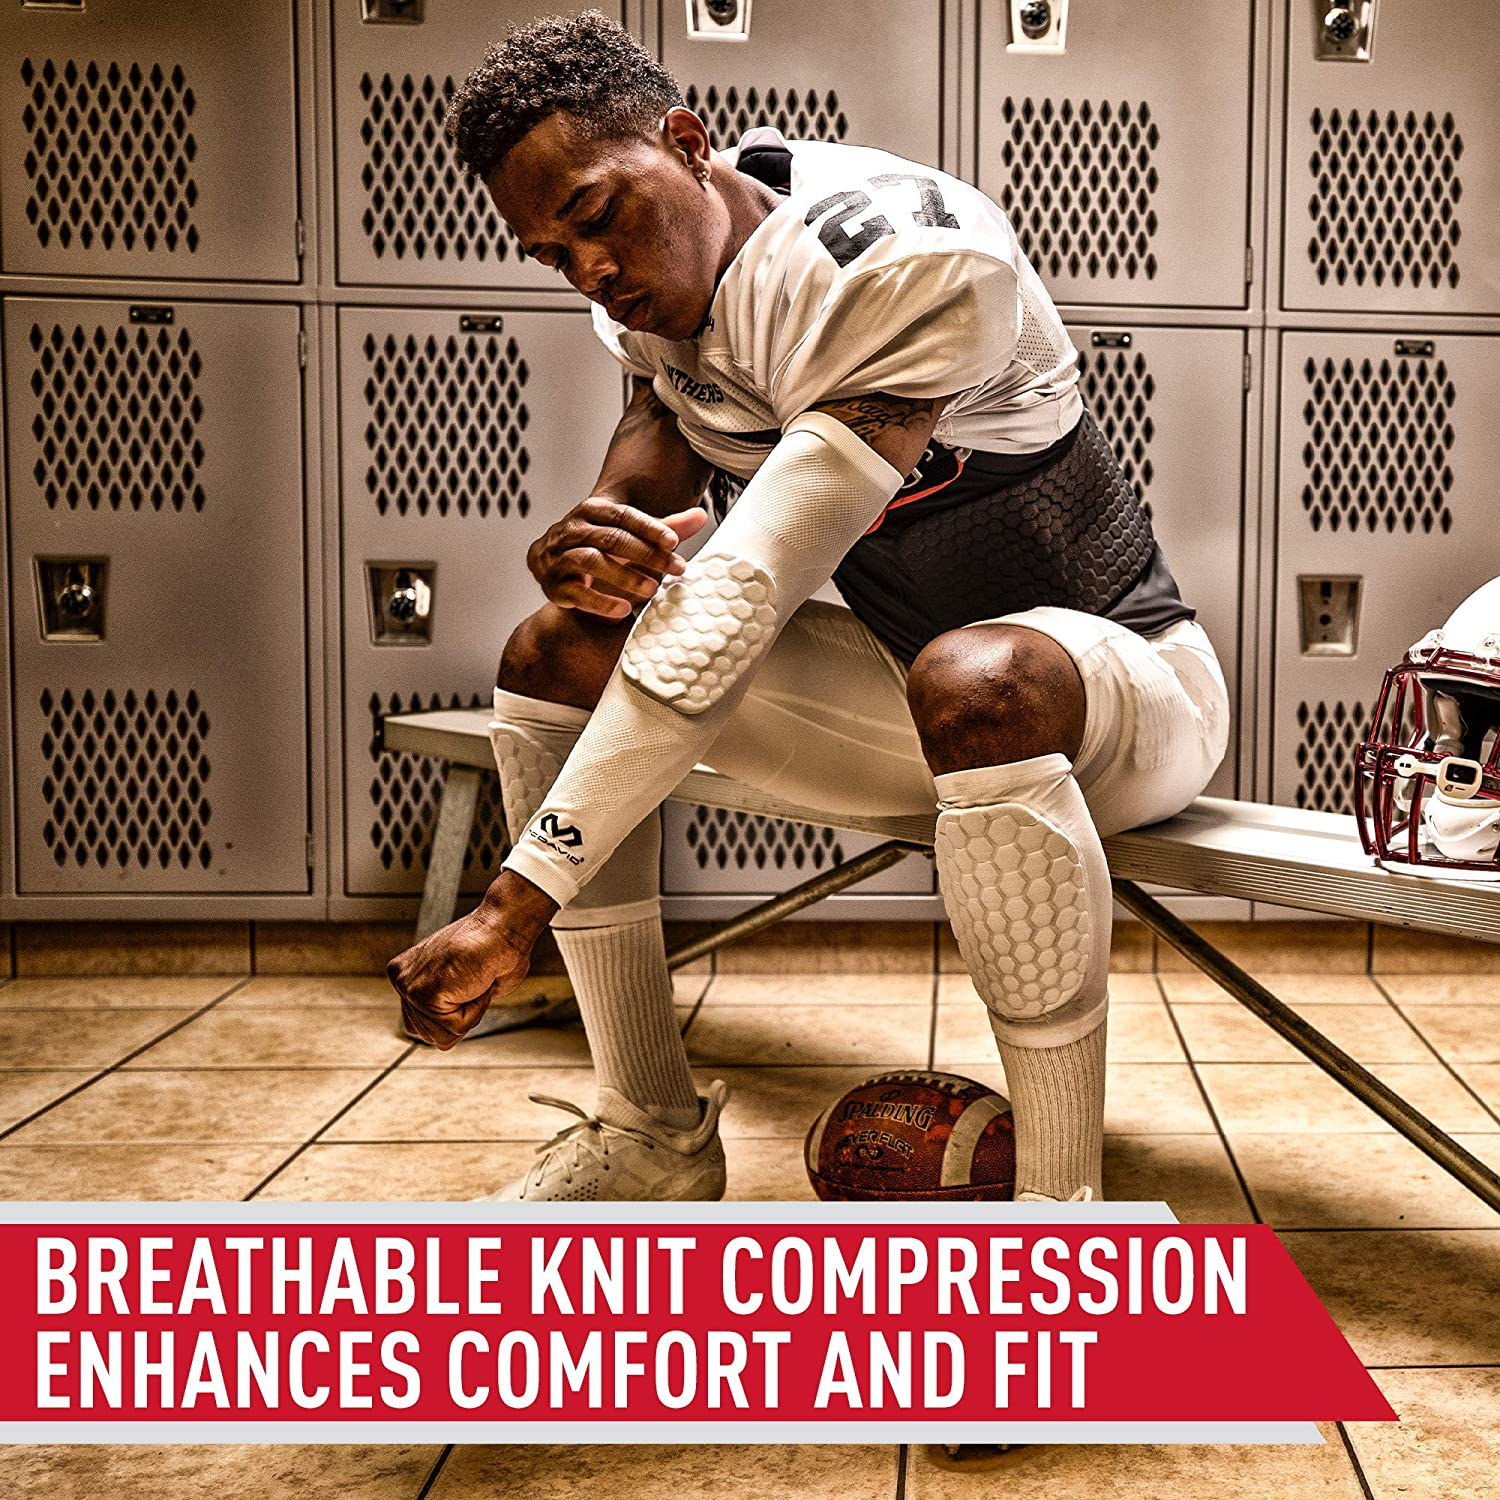 Knee Compression Sleeves: McDavid Hex Knee Pads Compression Leg Sleeve for Basketball, Volleyball, Weightlifting, and More - Pair of Sleeves: Sports & Outdoors